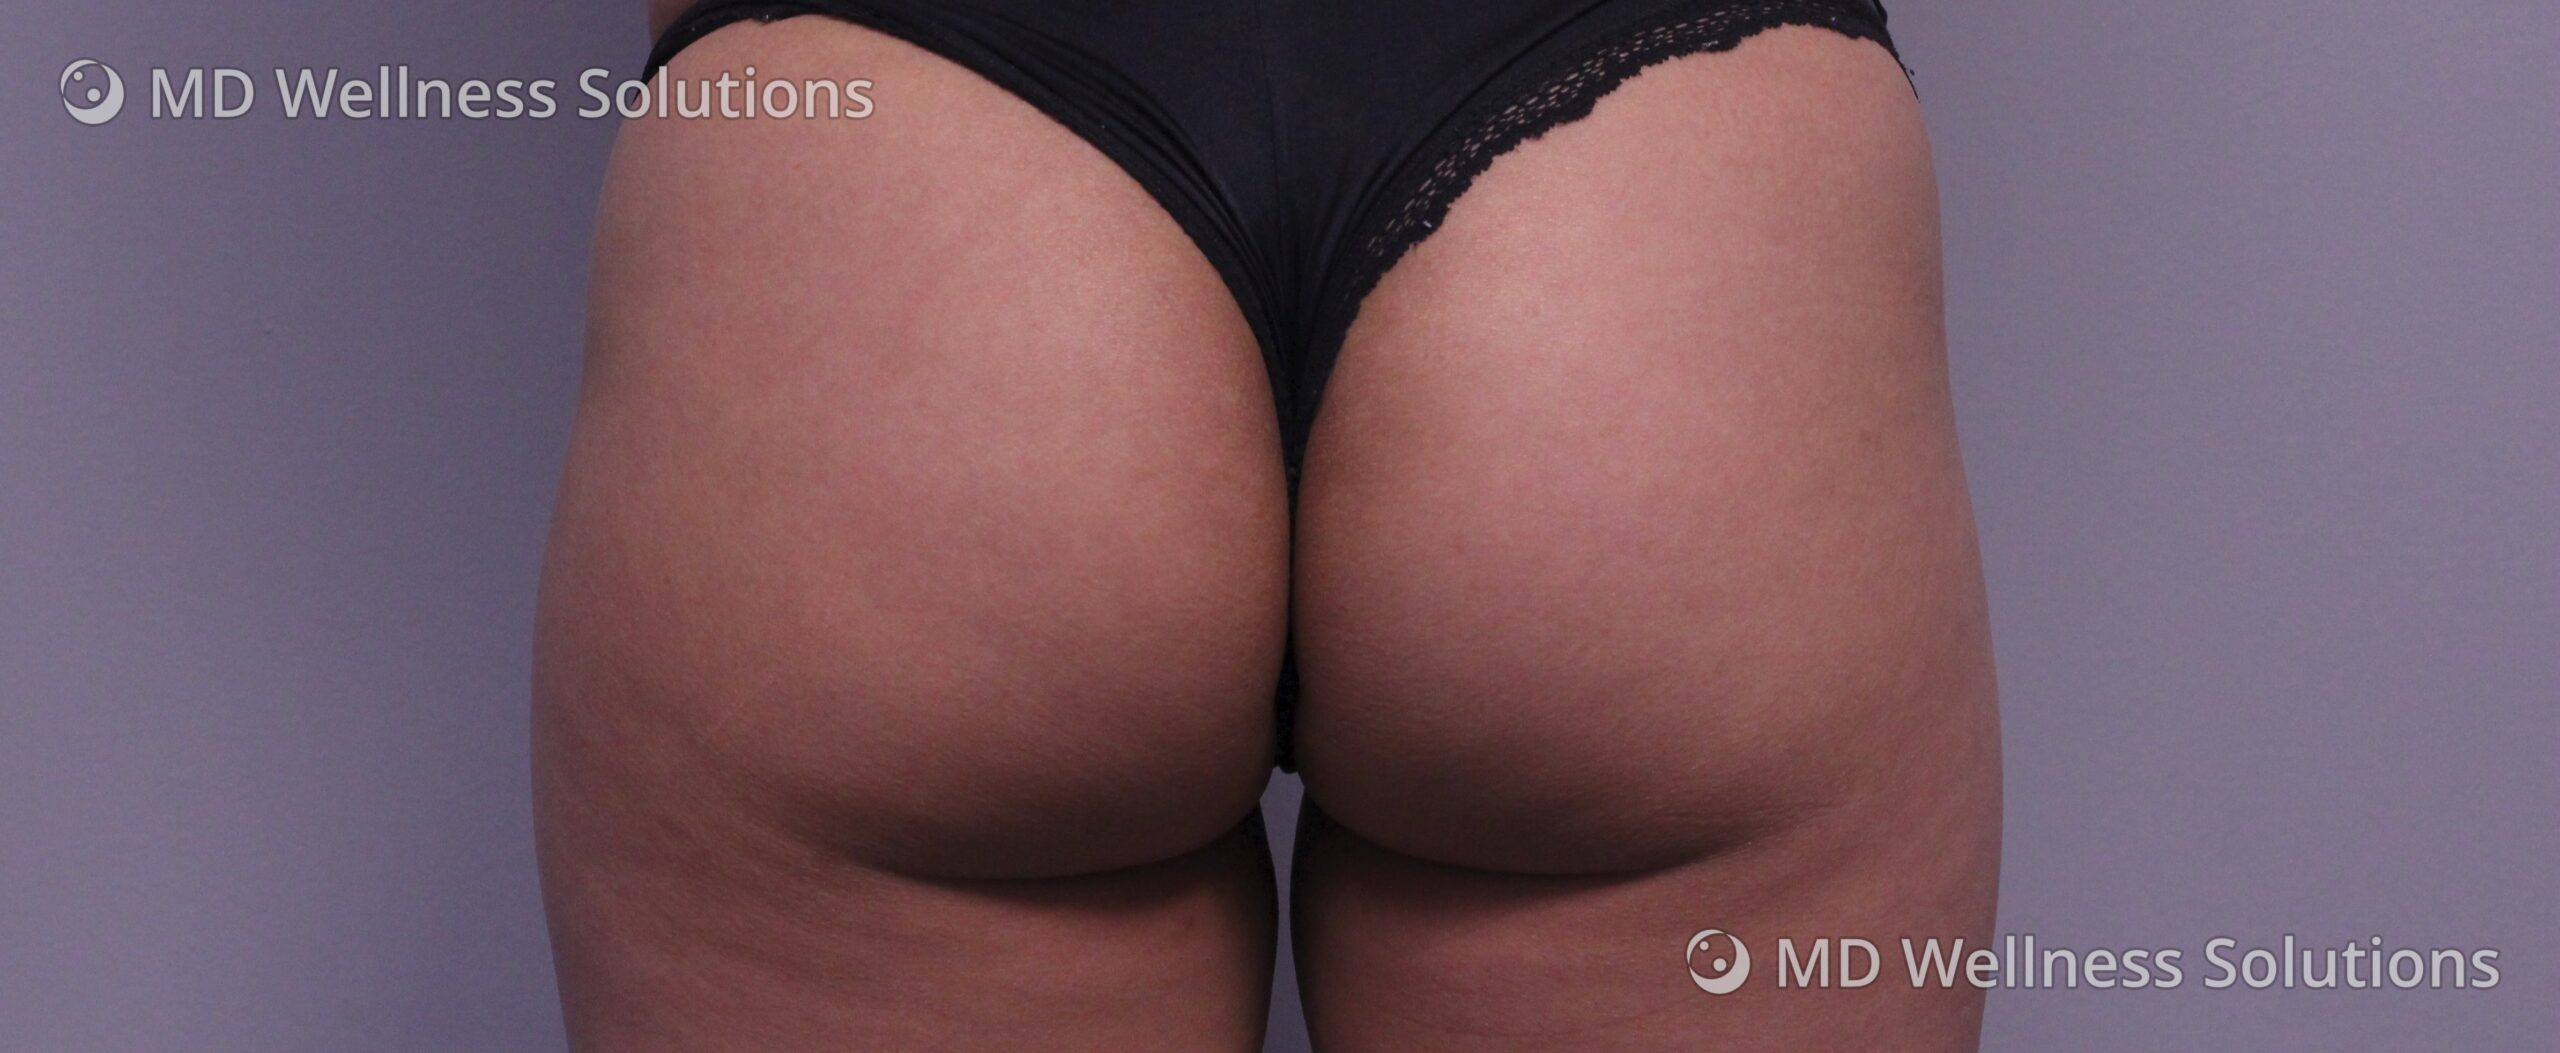 25-34 year old woman after Emsculpt NEO body contouring treatment